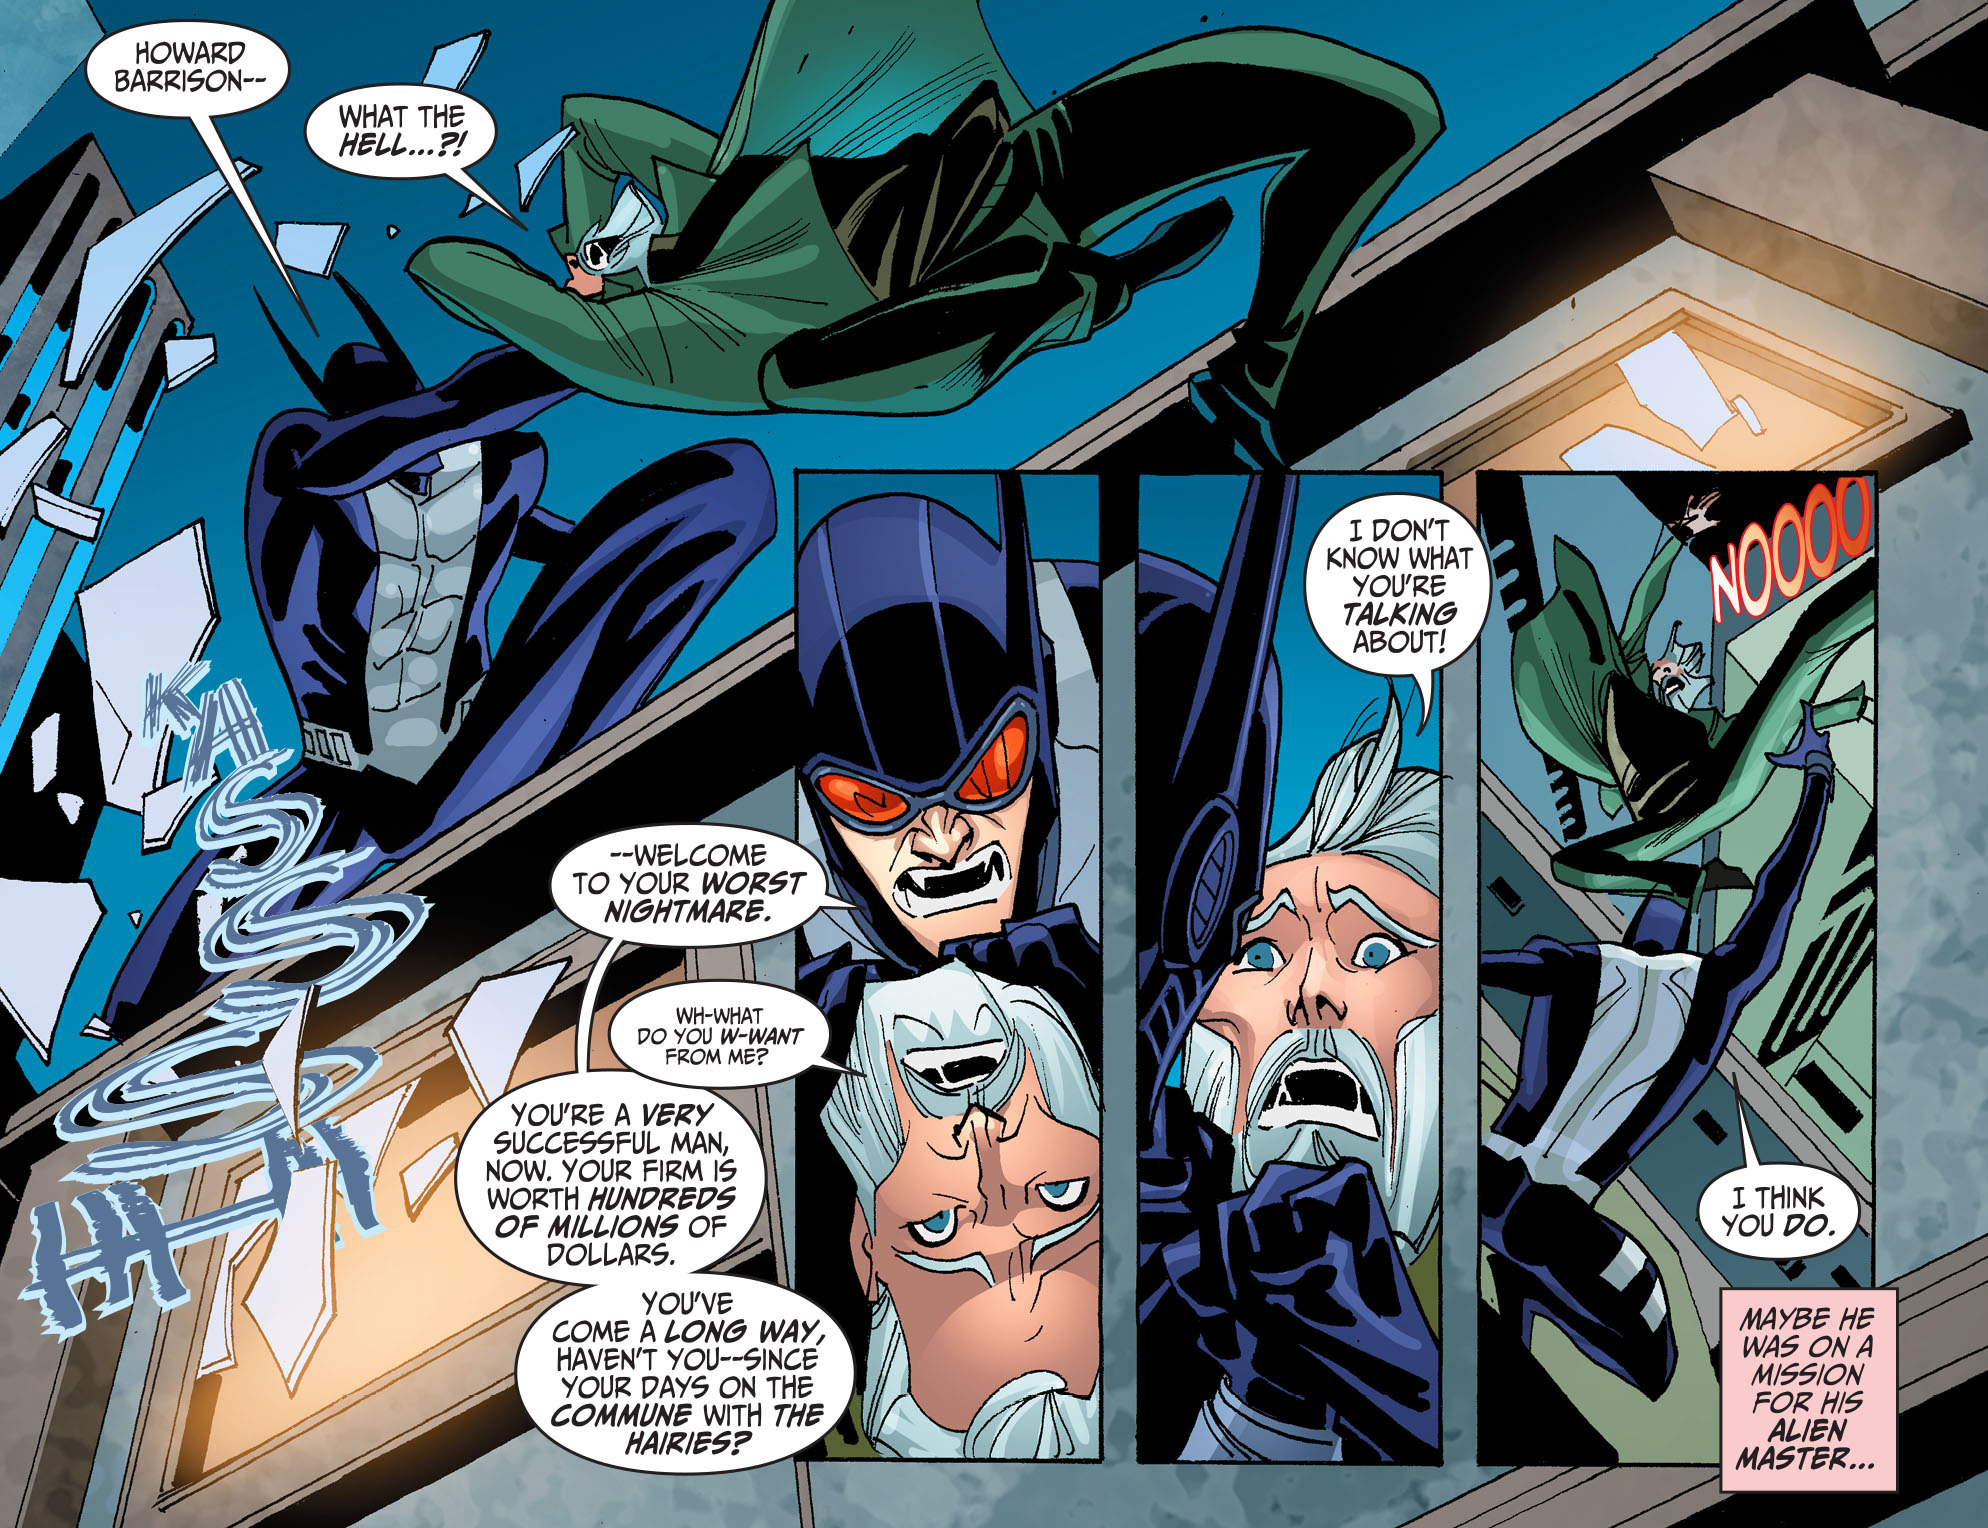 Justice League: Gods and Monsters #3 - Read Justice League